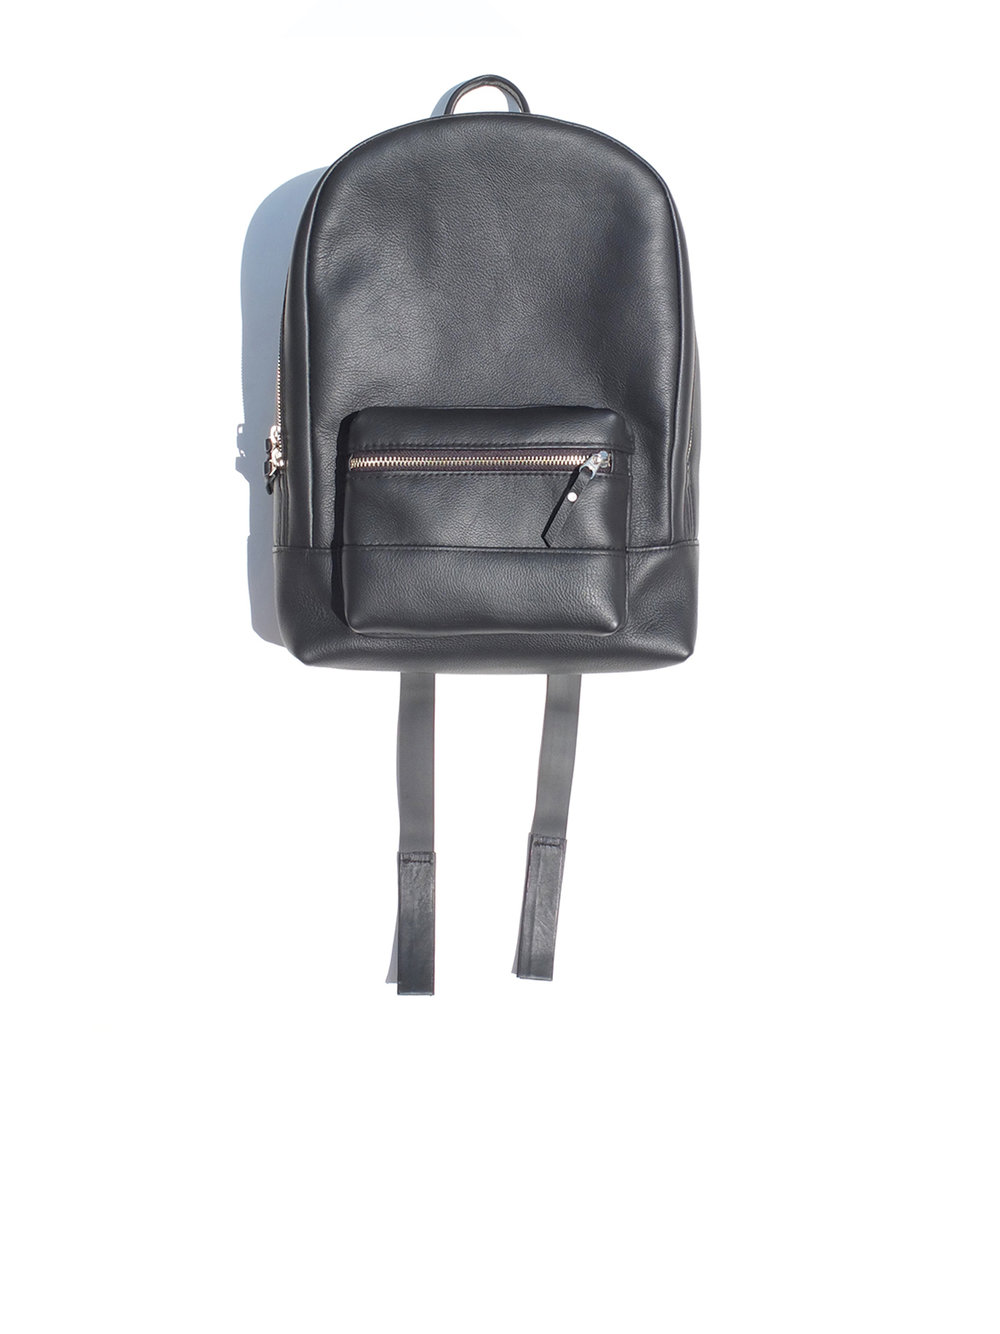 Sac à dos Rationale mini en cuir - 280.00$